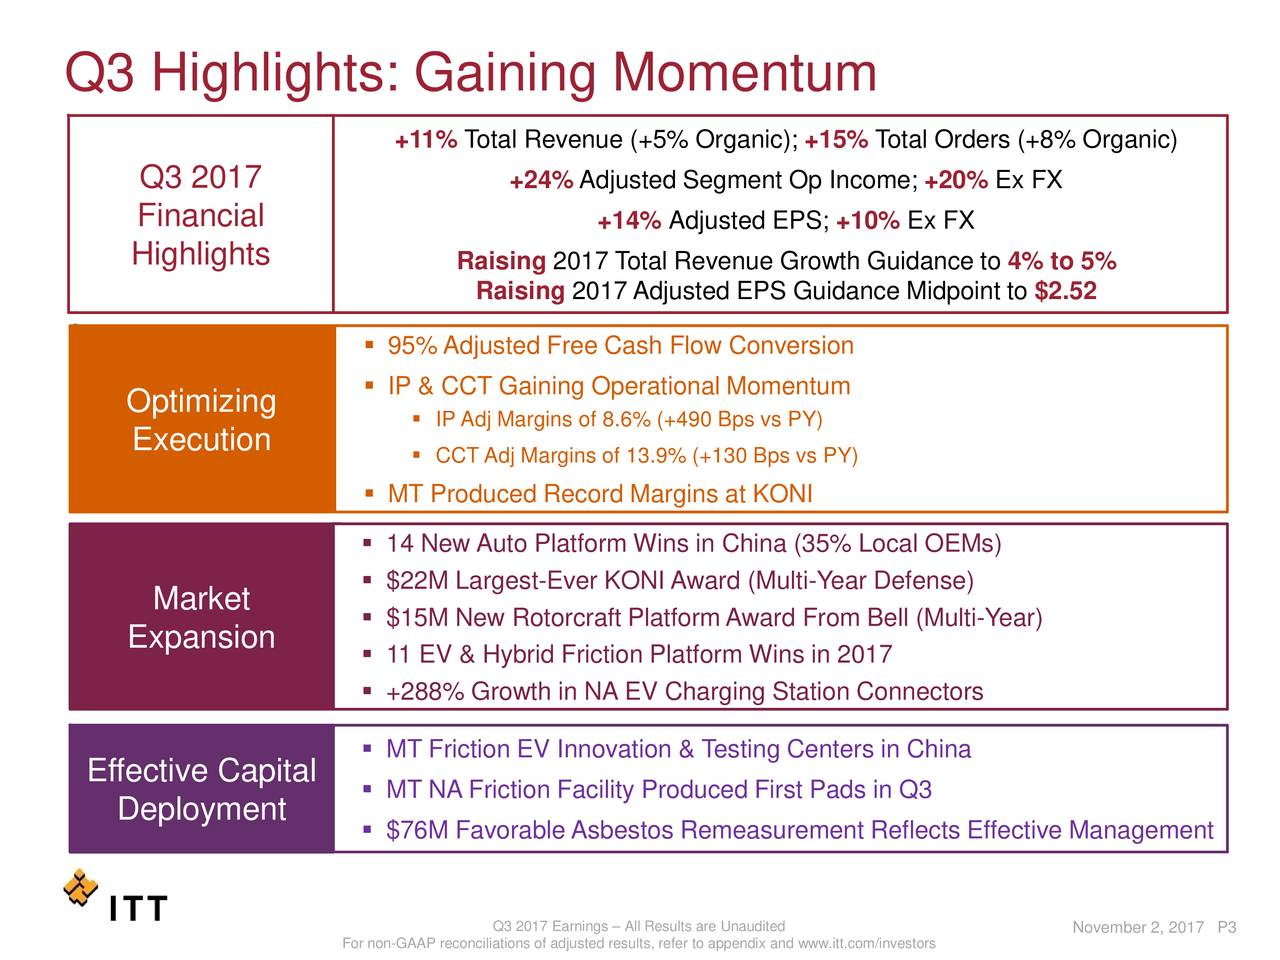 +11%Total Revenue (+5% Organic);+15% Total Orders (+8% Organic) Q3 2017 +24% Adjusted Segment Op Income; +20% Ex FX Financial +14% Adjusted EPS; +10% Ex FX Highlights Raising 2017 Total Revenue Growth Guidance to4% to 5% Raising 2017 AdjustedEPS Guidance Midpoint to$2.52  95% Adjusted Free Cash Flow Conversion Optimizing  IP & CCT Gaining Operational Momentum  IPAdj Margins of 8.6% (+490 Bps vs PY) Execution  CCT Adj Margins of 13.9% (+130 Bps vs PY)  MT Produced Record Margins at KONI  14 New Auto Platform Wins in China (35% Local OEMs)  $22M Largest-Ever KONI Award (Multi-Year Defense) Market  $15M New Rotorcraft Platform Award From Bell (Multi-Year) Expansion  11 EV & Hybrid Friction Platform Wins in 2017  +288% Growth in NA EV ChargingStation Connectors  MT Friction EV Innovation & TestingCenters in China Effective Capital  MT NA Friction Facility Produced First Pads in Q3 Deployment  $76M FavorableAsbestos Remeasurement Reflects Effective Management Q3 2017 Earnings – All Results are Unaudited November 2, 2017 P3